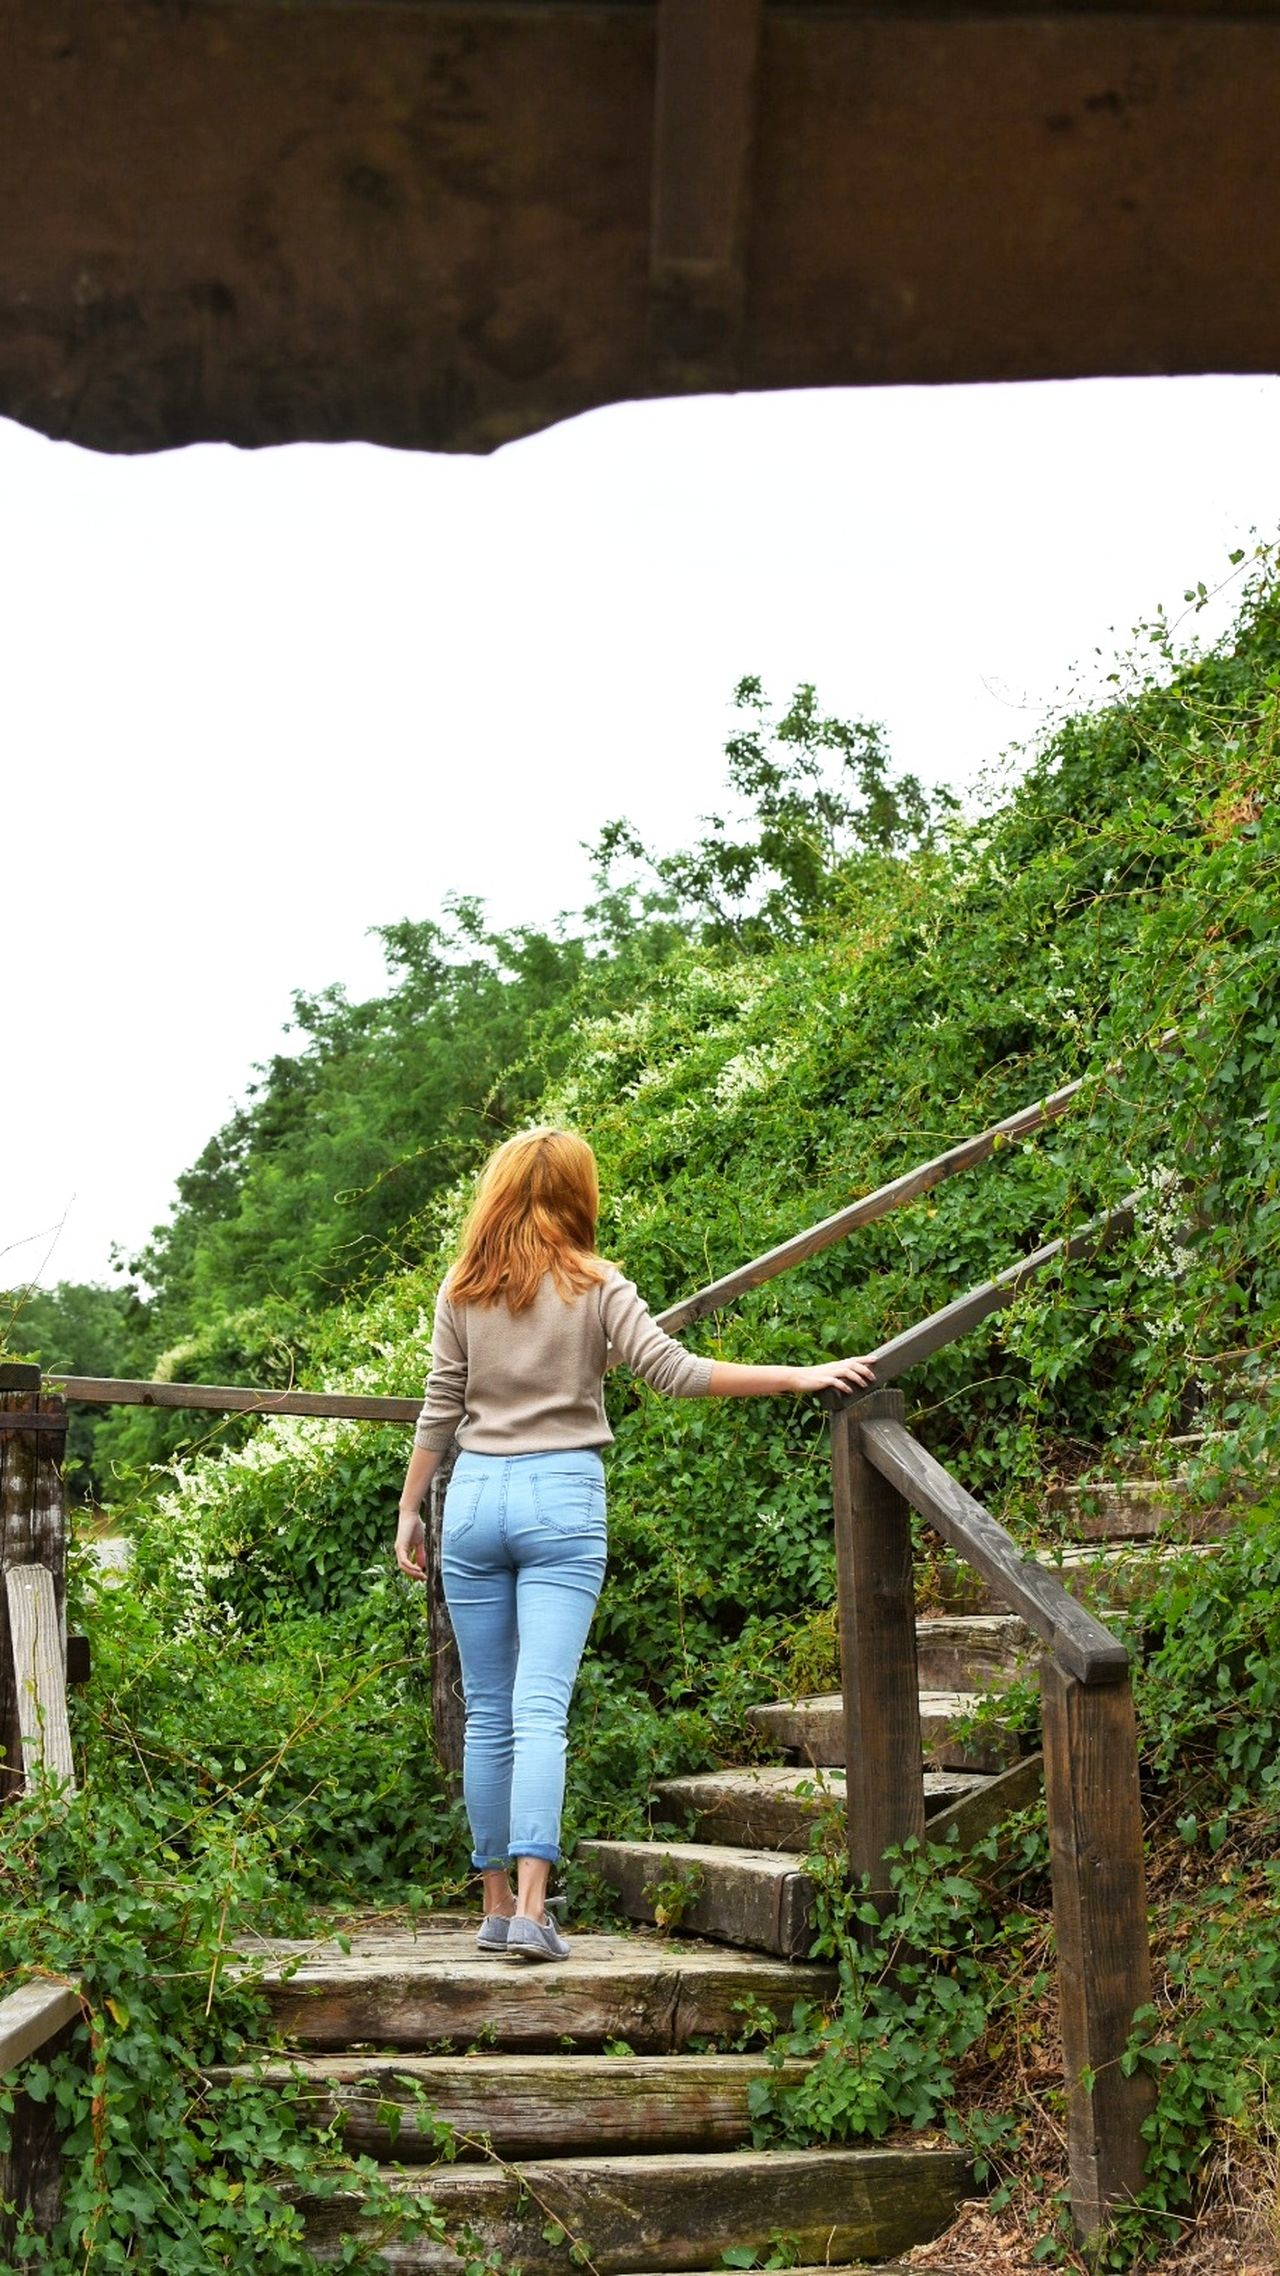 Redhead Only Women Rear View One Person Young Women Casual Clothing Long Hair Full Length Nature Walk Nature Exploring